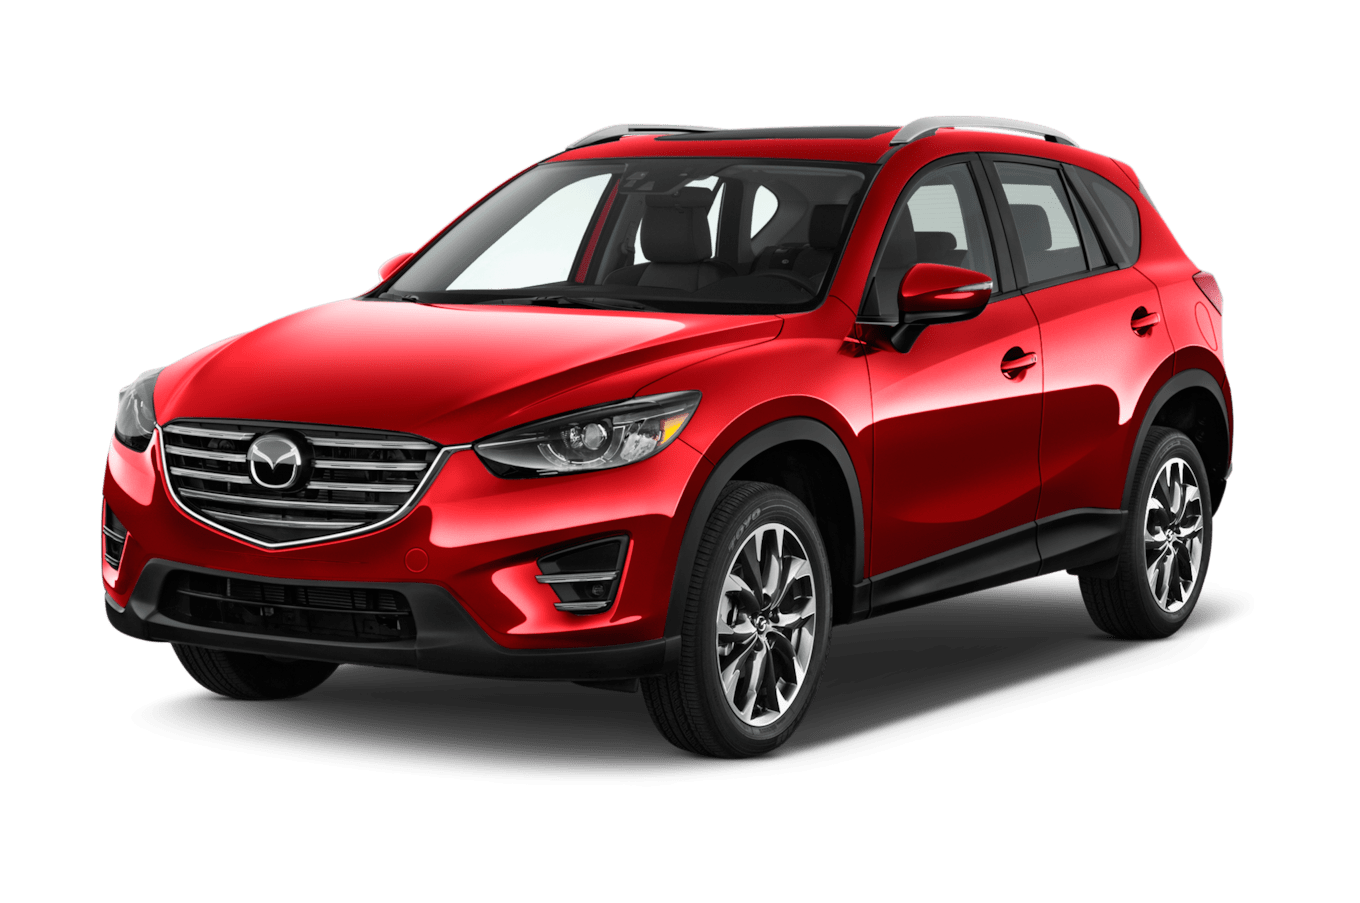 2016 Mazda Cx5 Reviews And Rating  Motor Trend Canada